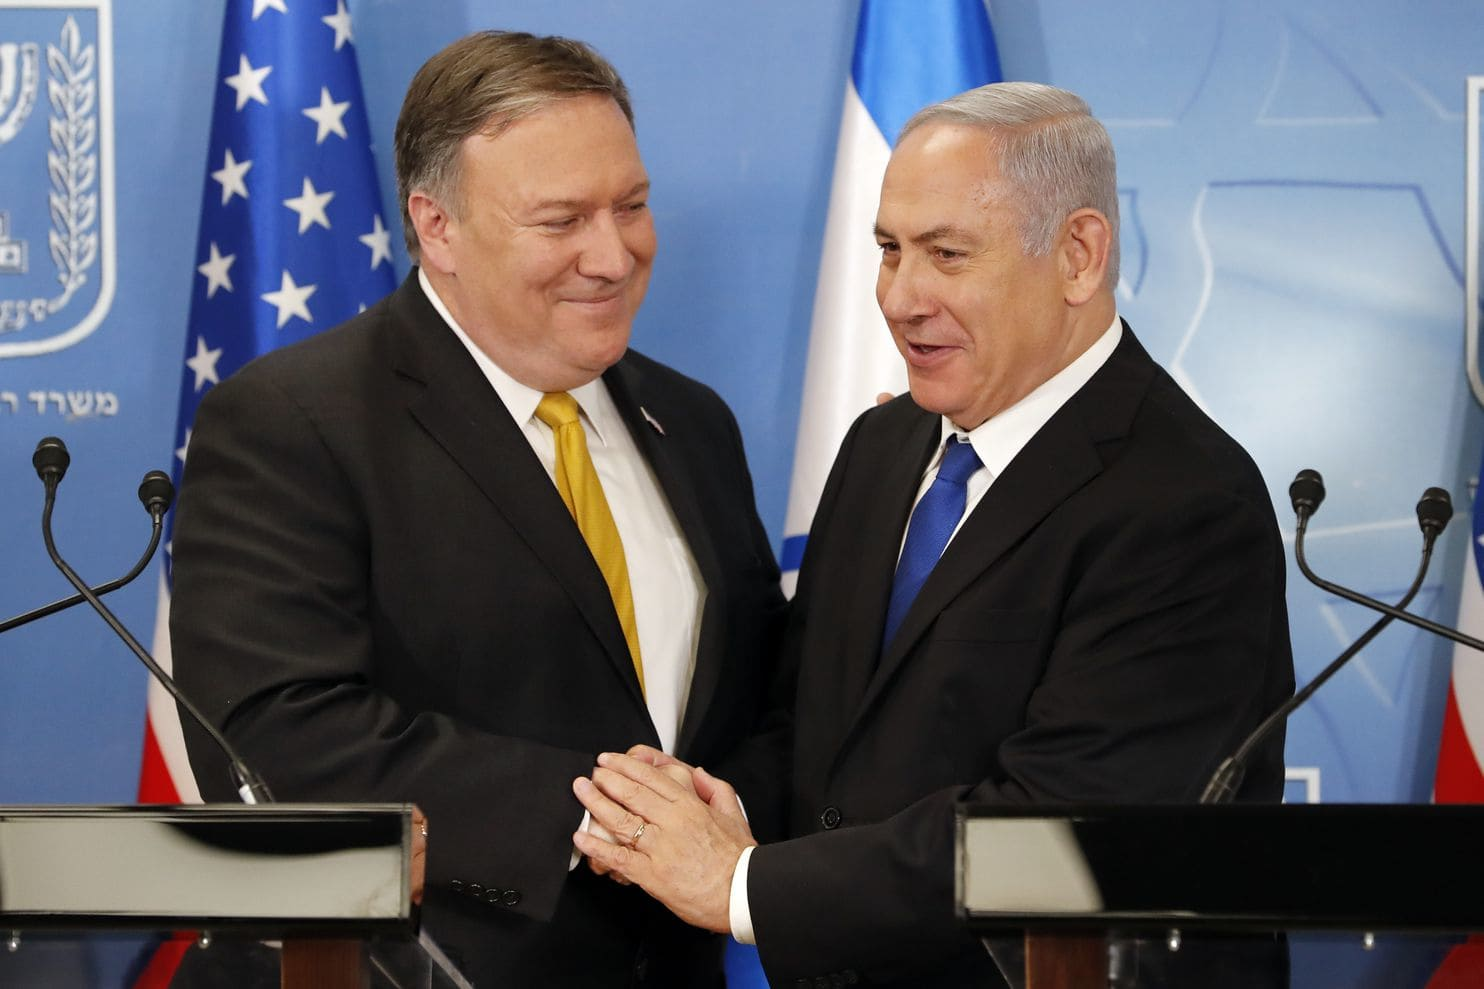 Pompeo says US stands with Israelis, Saudis against Iran